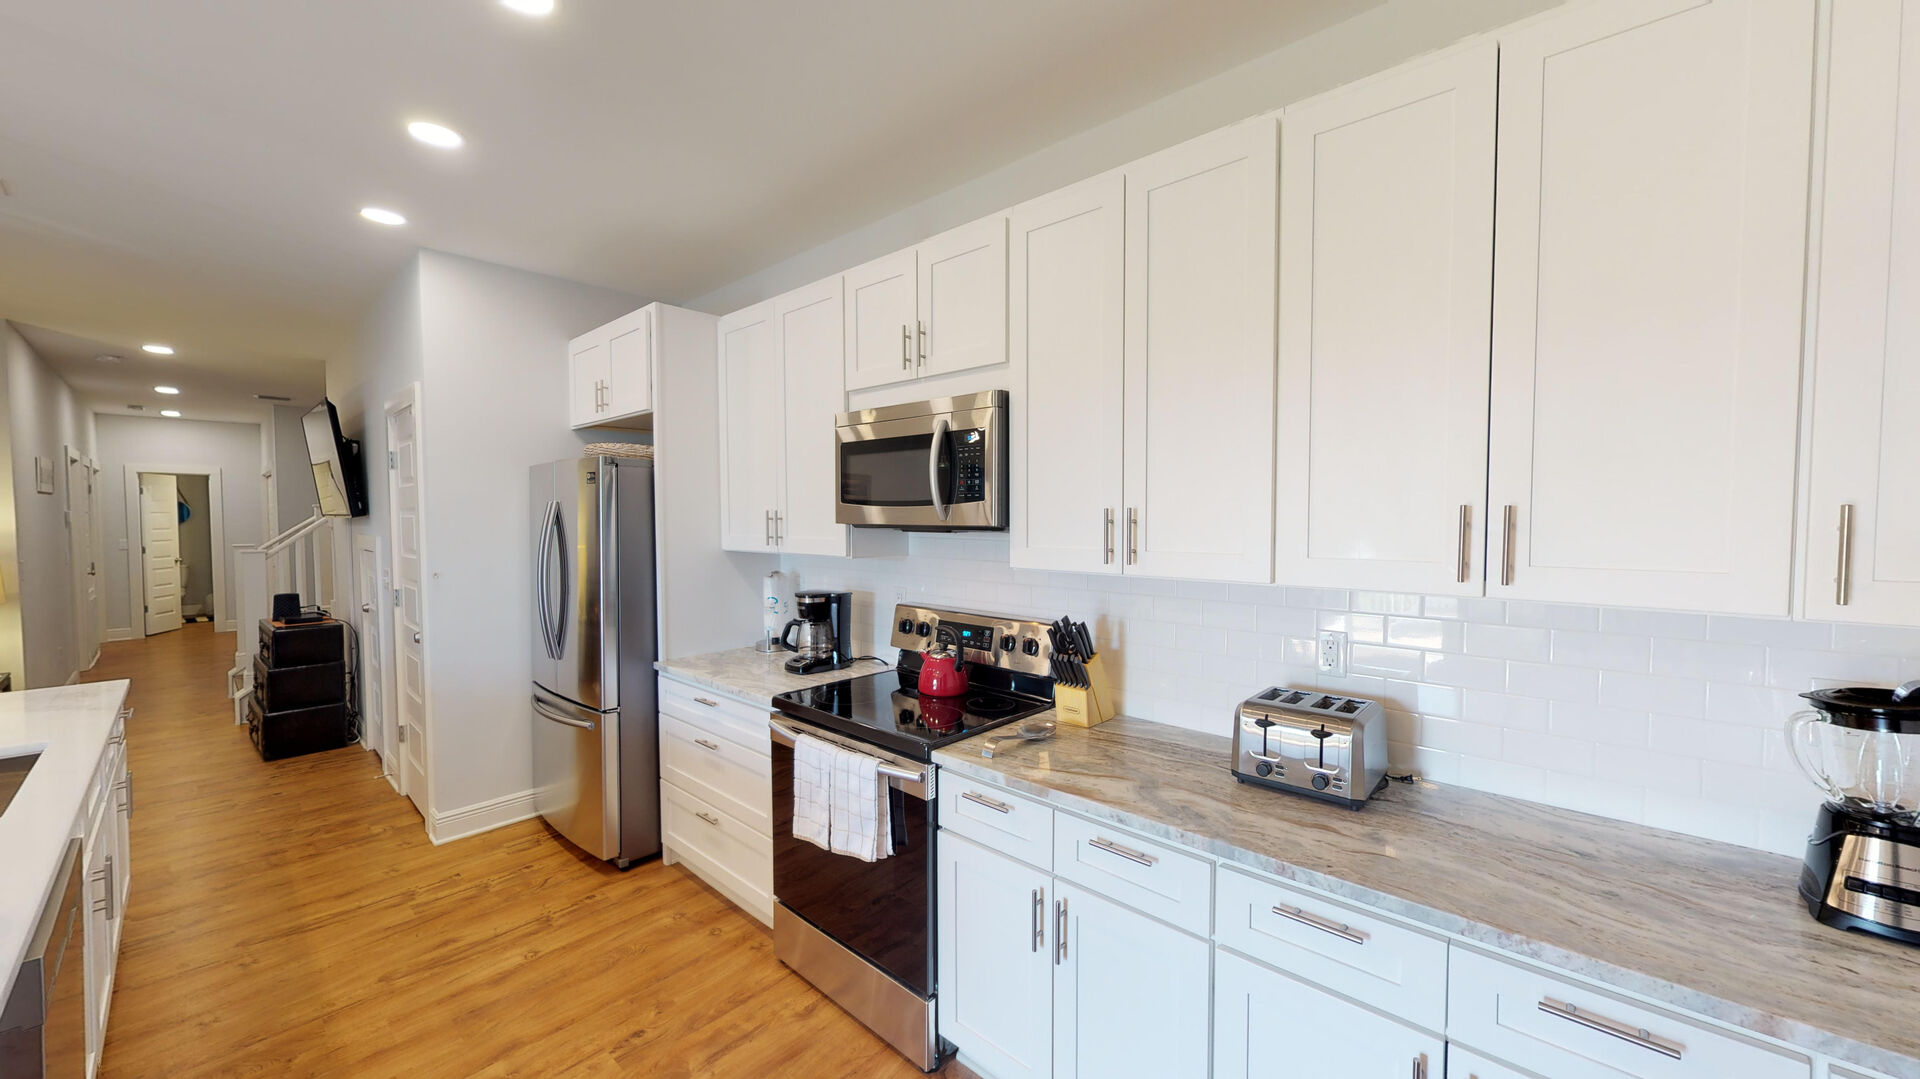 Kitchen with Refrigerator, Microwave, Toaster, and TV.